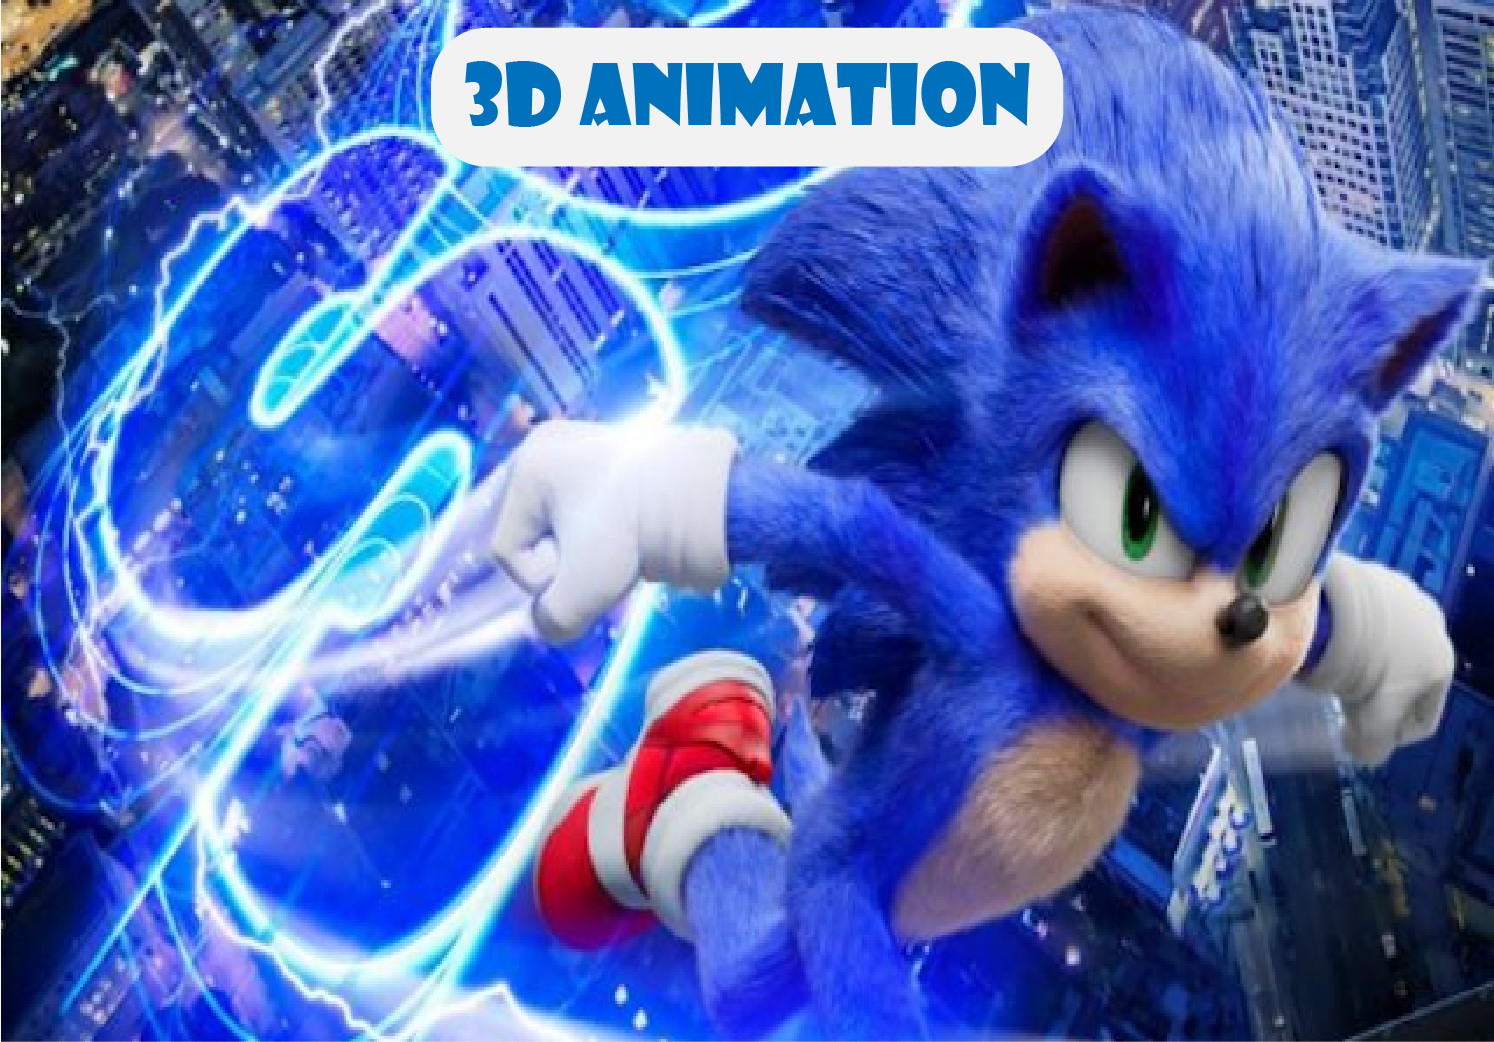 3D Animation future in world market